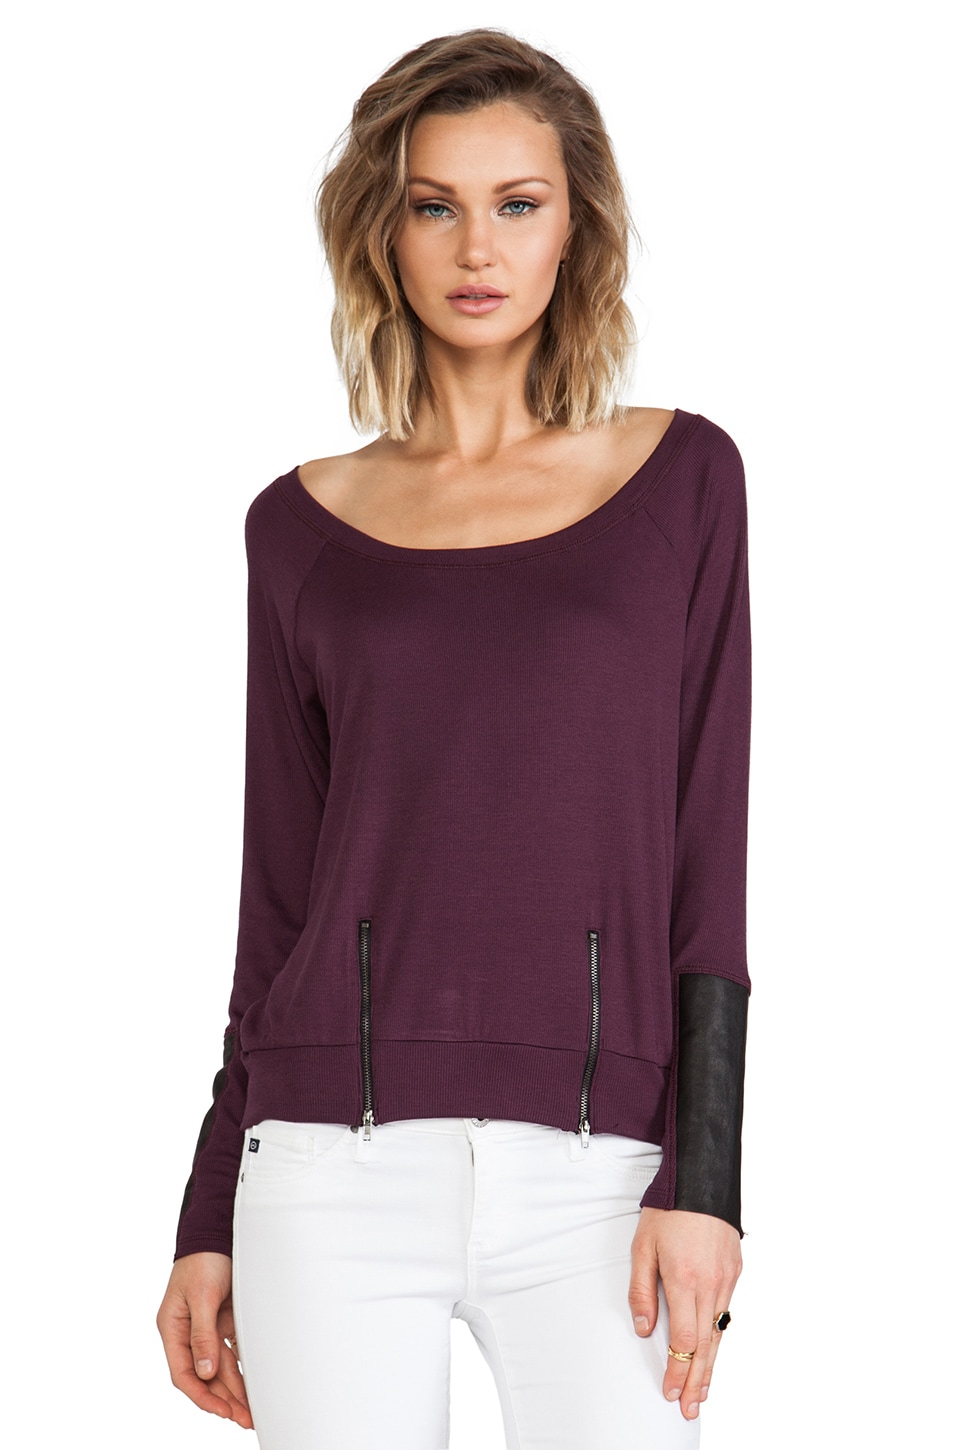 Heather Leather Cuff Zip Top in Aubergine